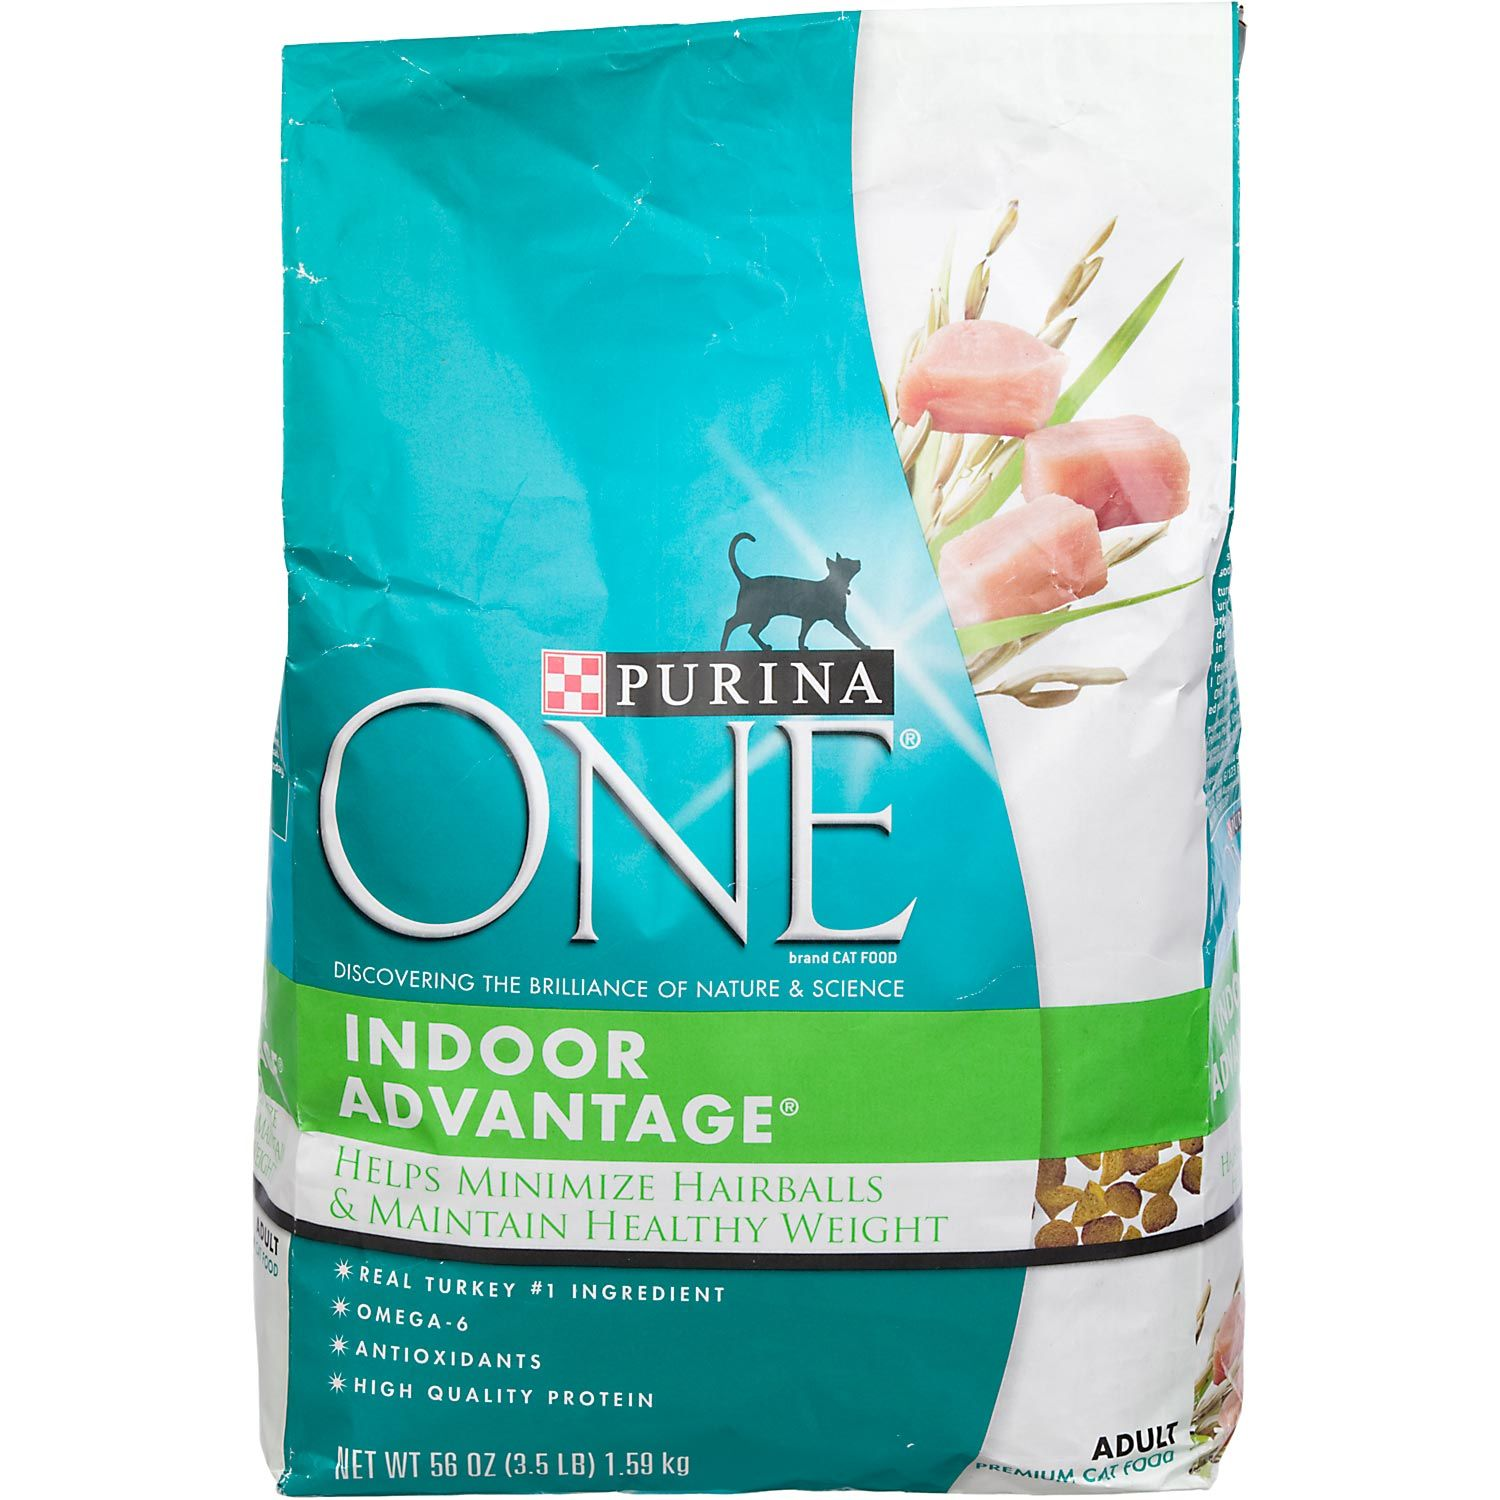 Purina ONE Indoor Advantage Hairball & Healthy Weight Cat